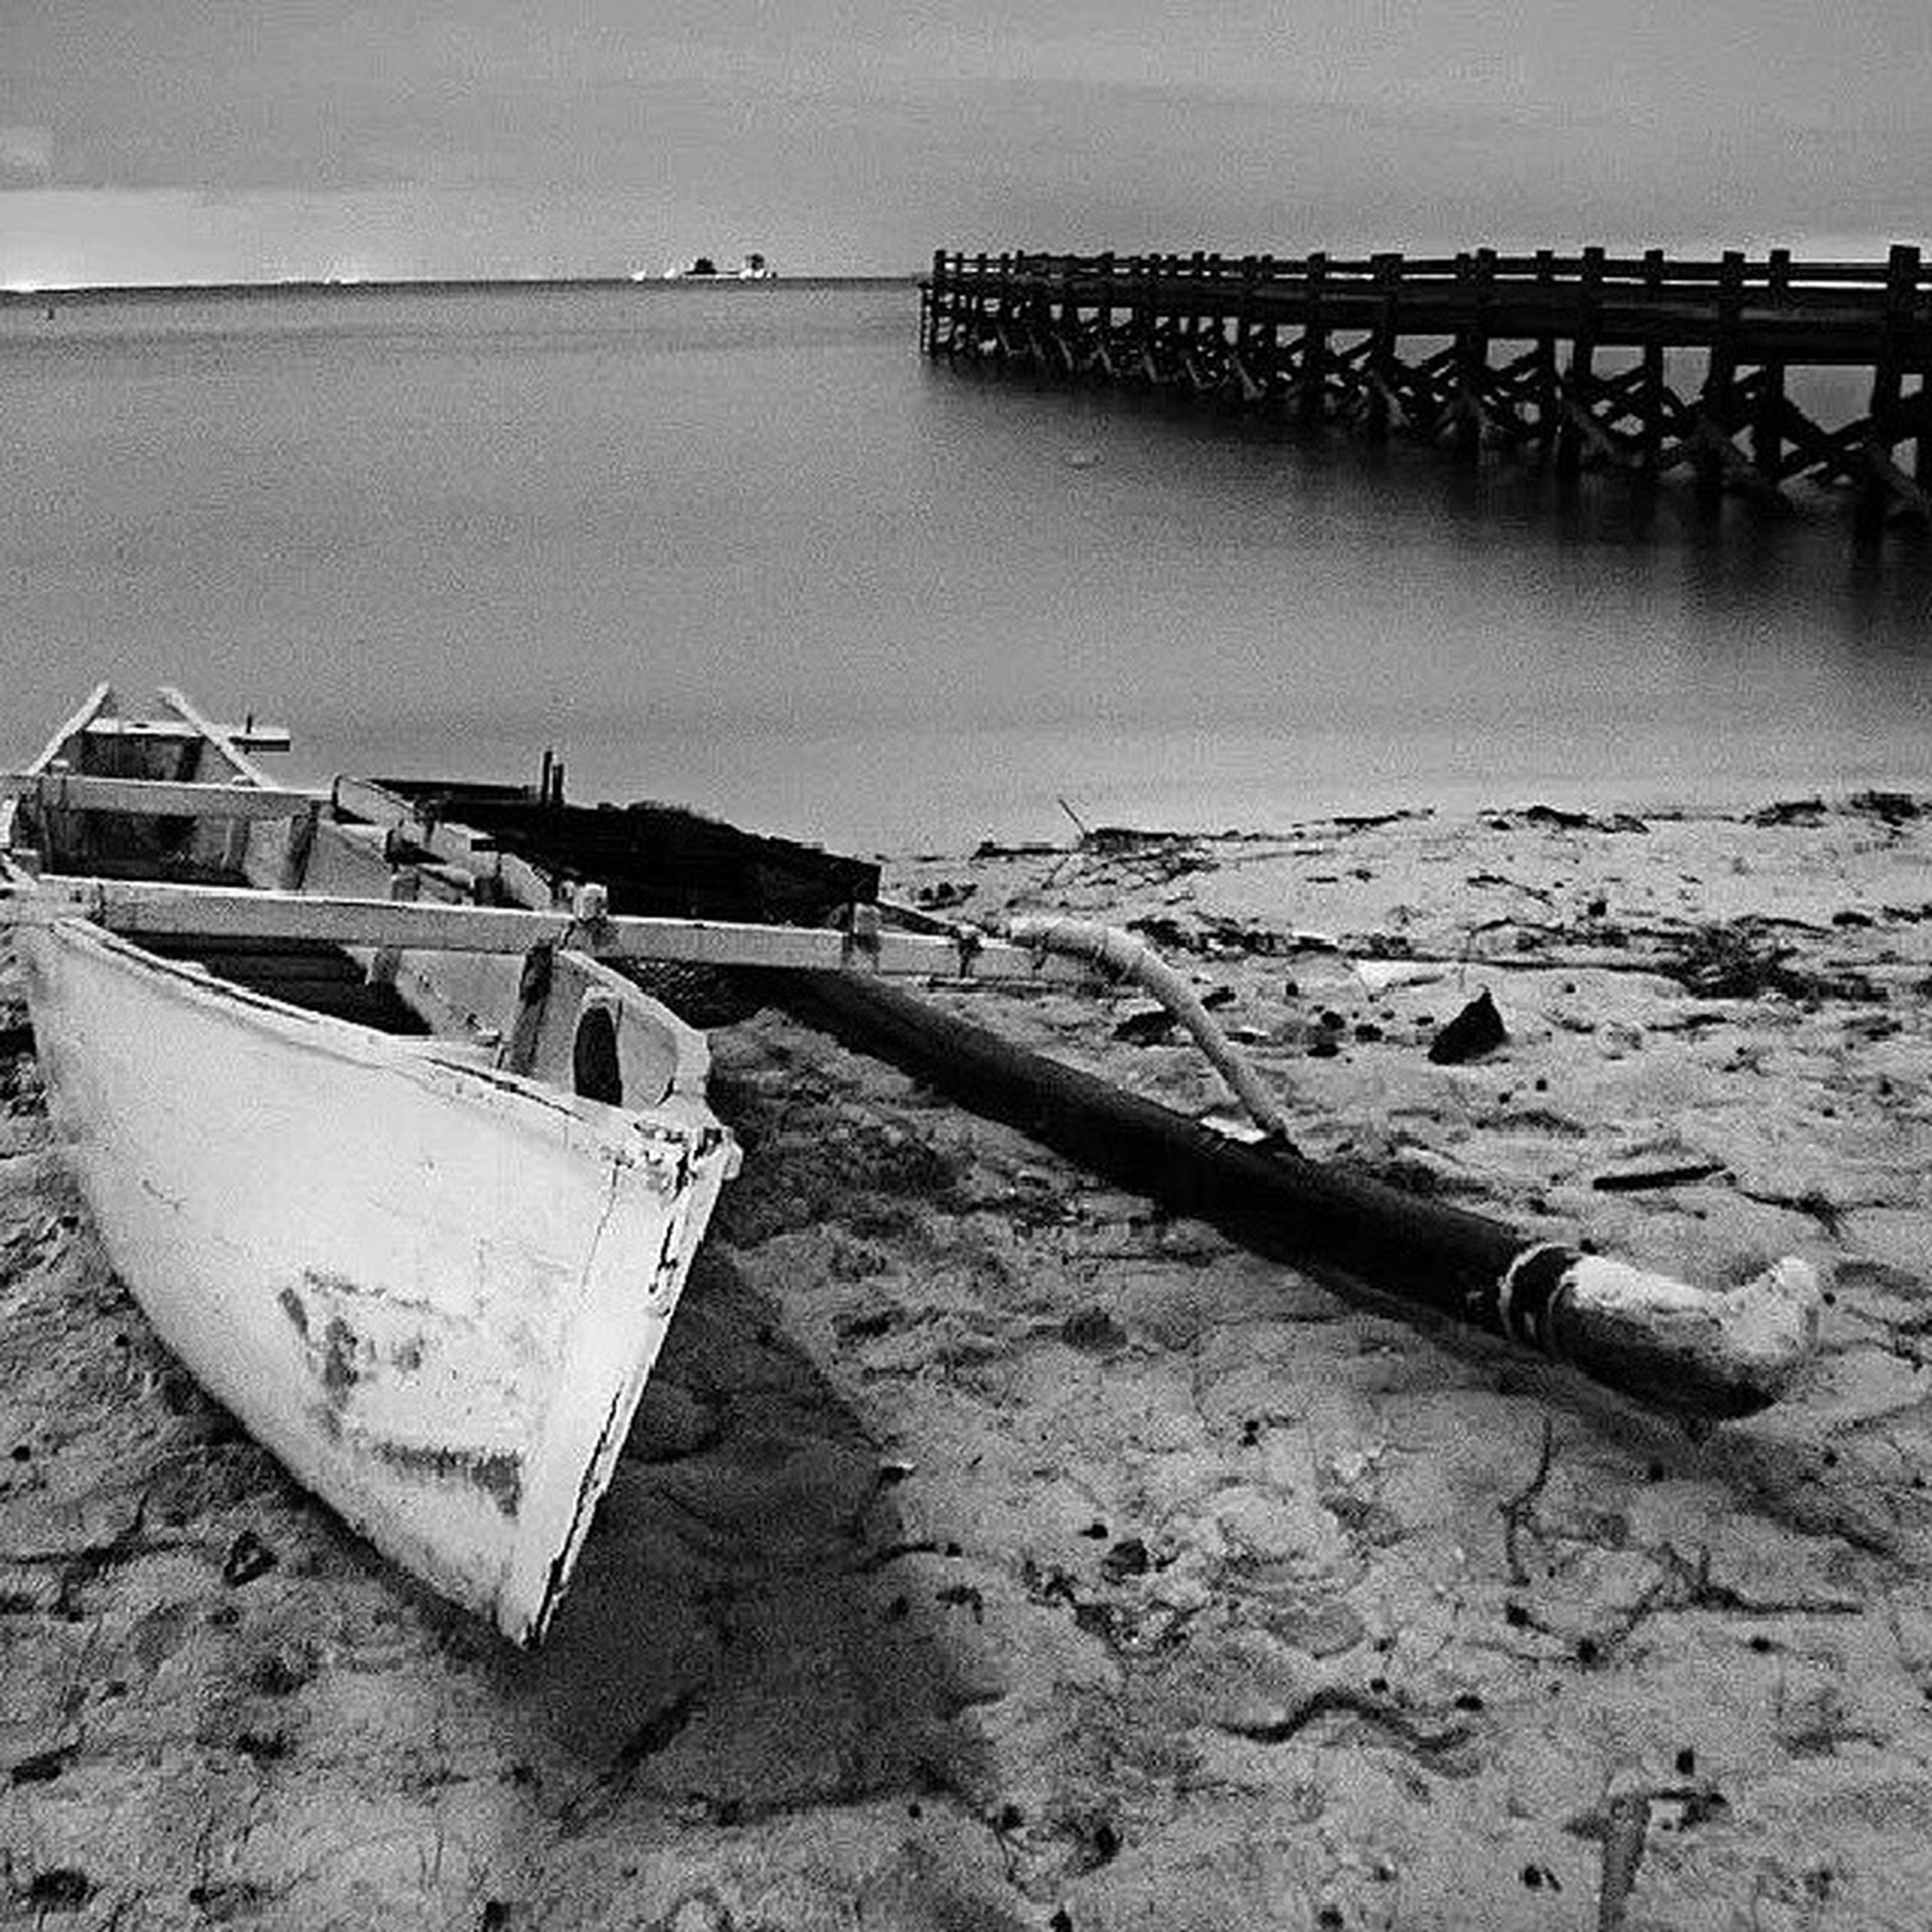 nautical vessel, moored, transportation, water, boat, mode of transport, sea, beach, pier, shore, abandoned, harbor, nature, wood - material, sky, outdoors, day, no people, tranquility, damaged